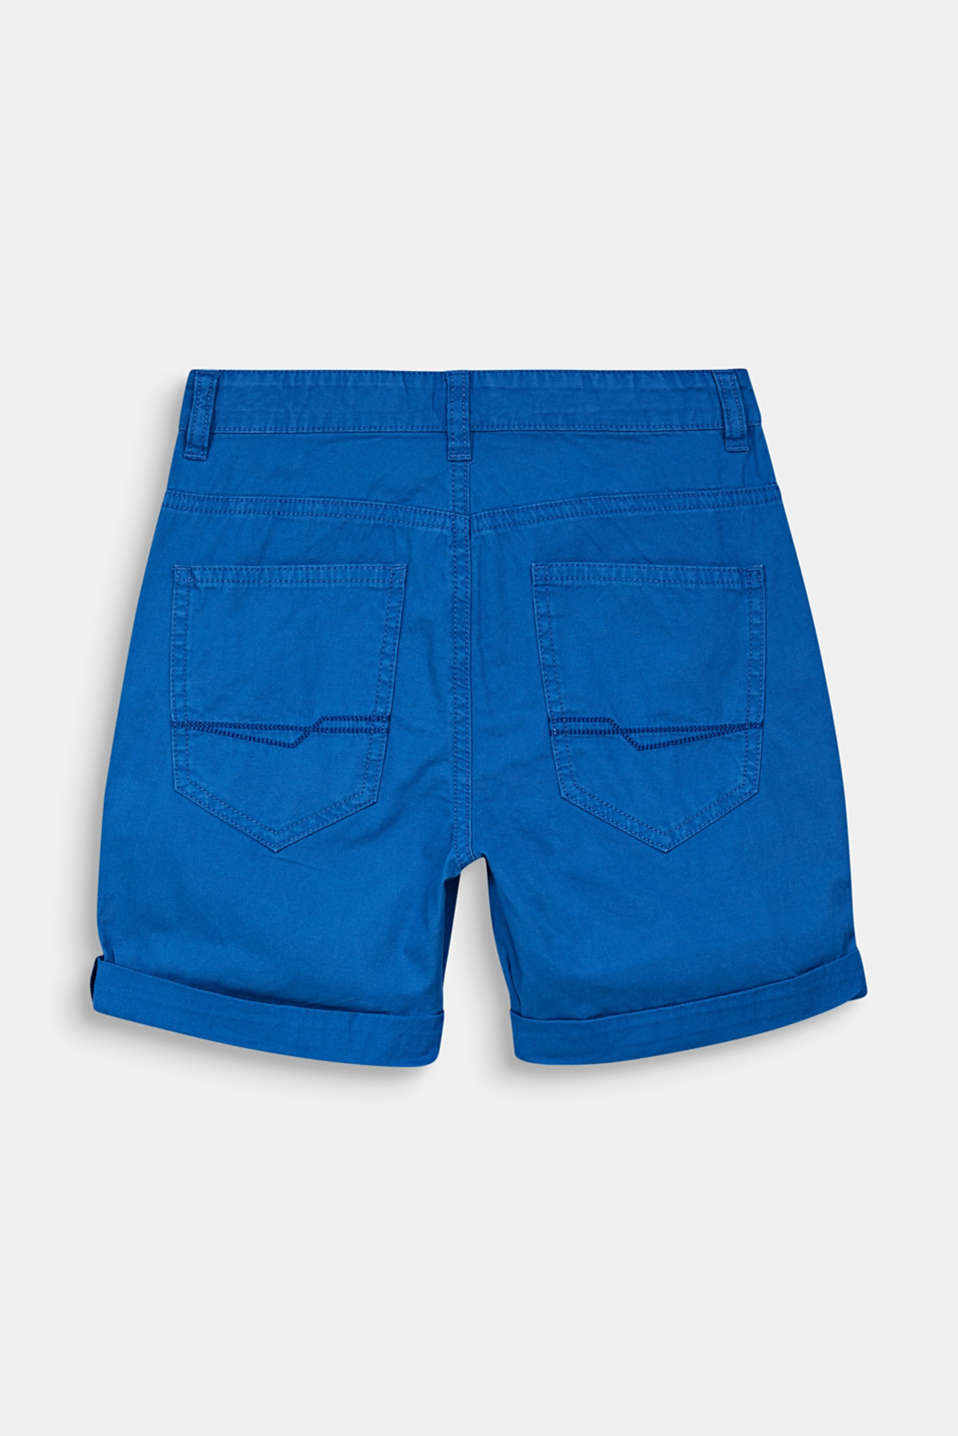 Woven shorts with a print, 100% cotton, LCELECTRIC BLUE, detail image number 1